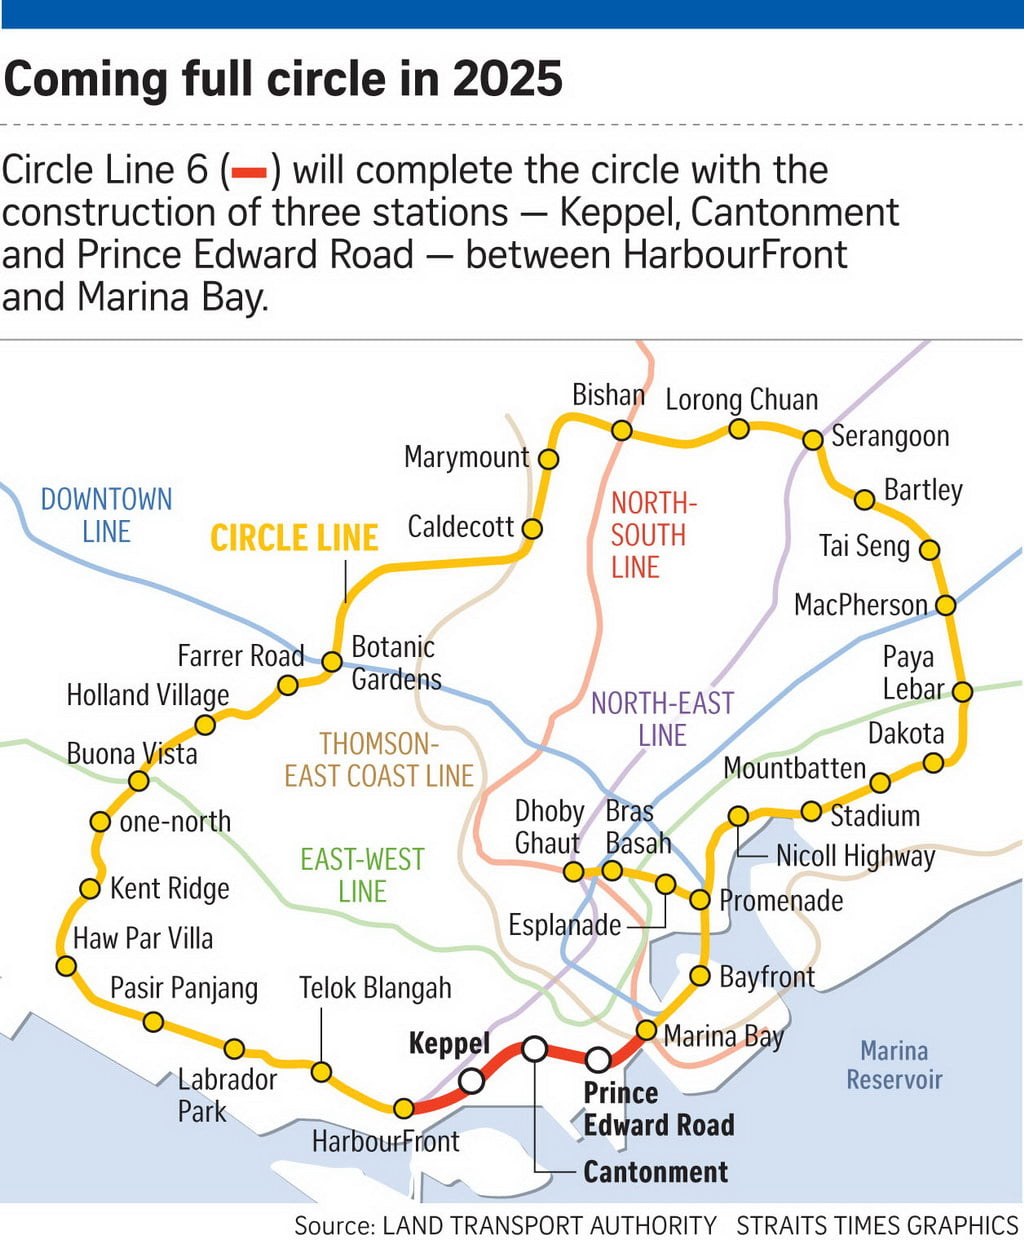 Stage 6 of Circle Line